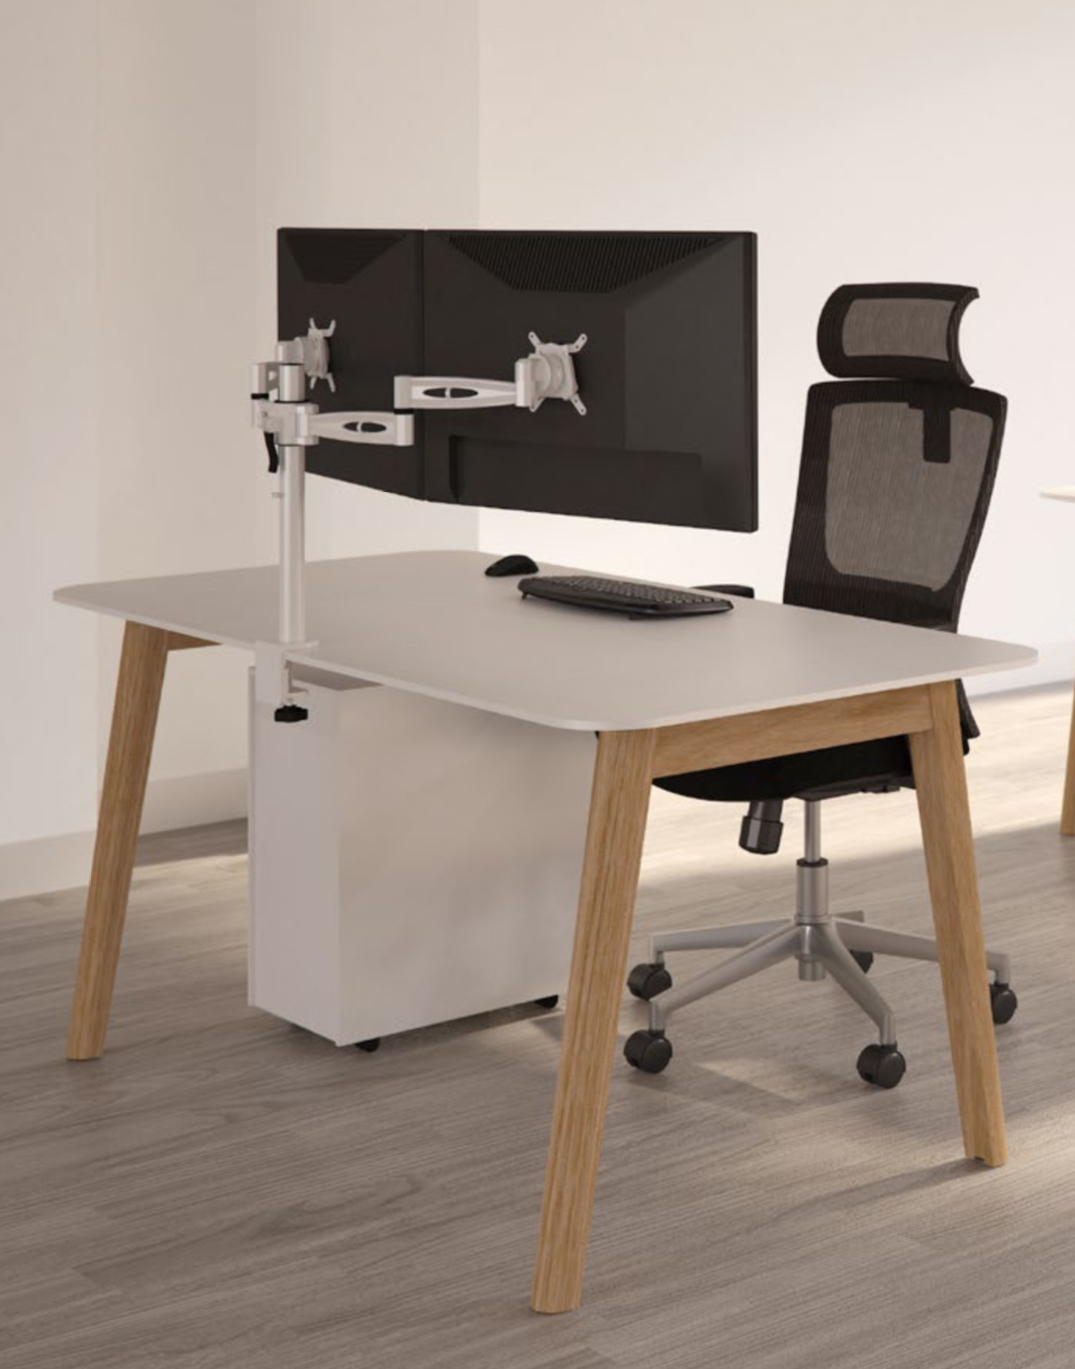 Accent Home Office Furniture , Desks , Seating , Storage and Accessories